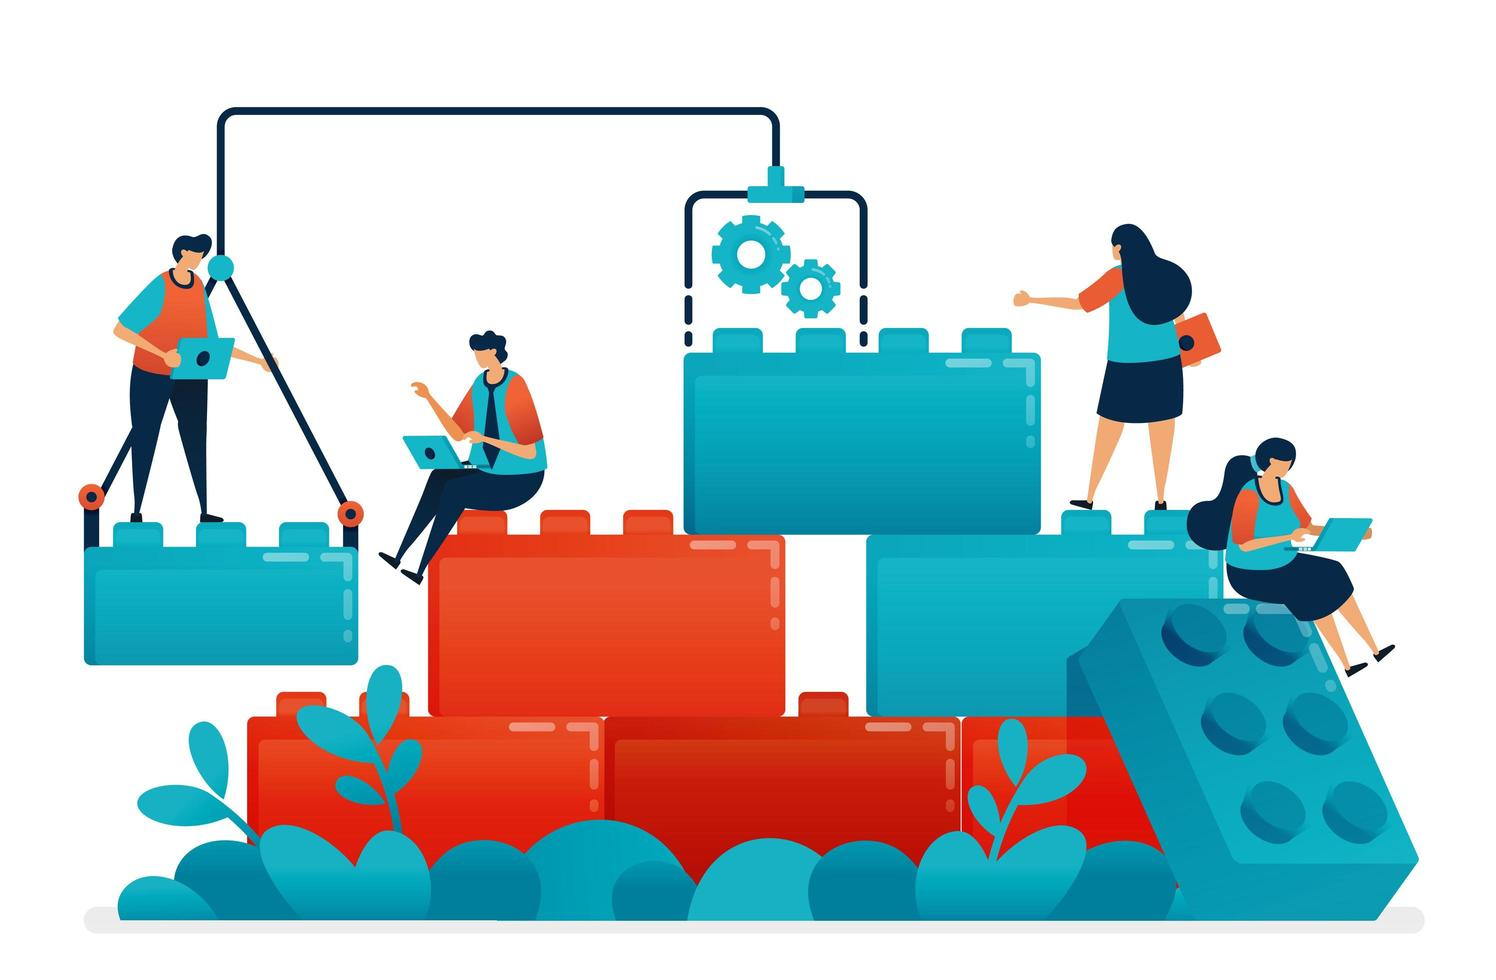 Compose lego games to teamwork and collaboration in work and business problem solving. Construction model for children leadership and partnership. Illustration of website, banner, software, poster vector